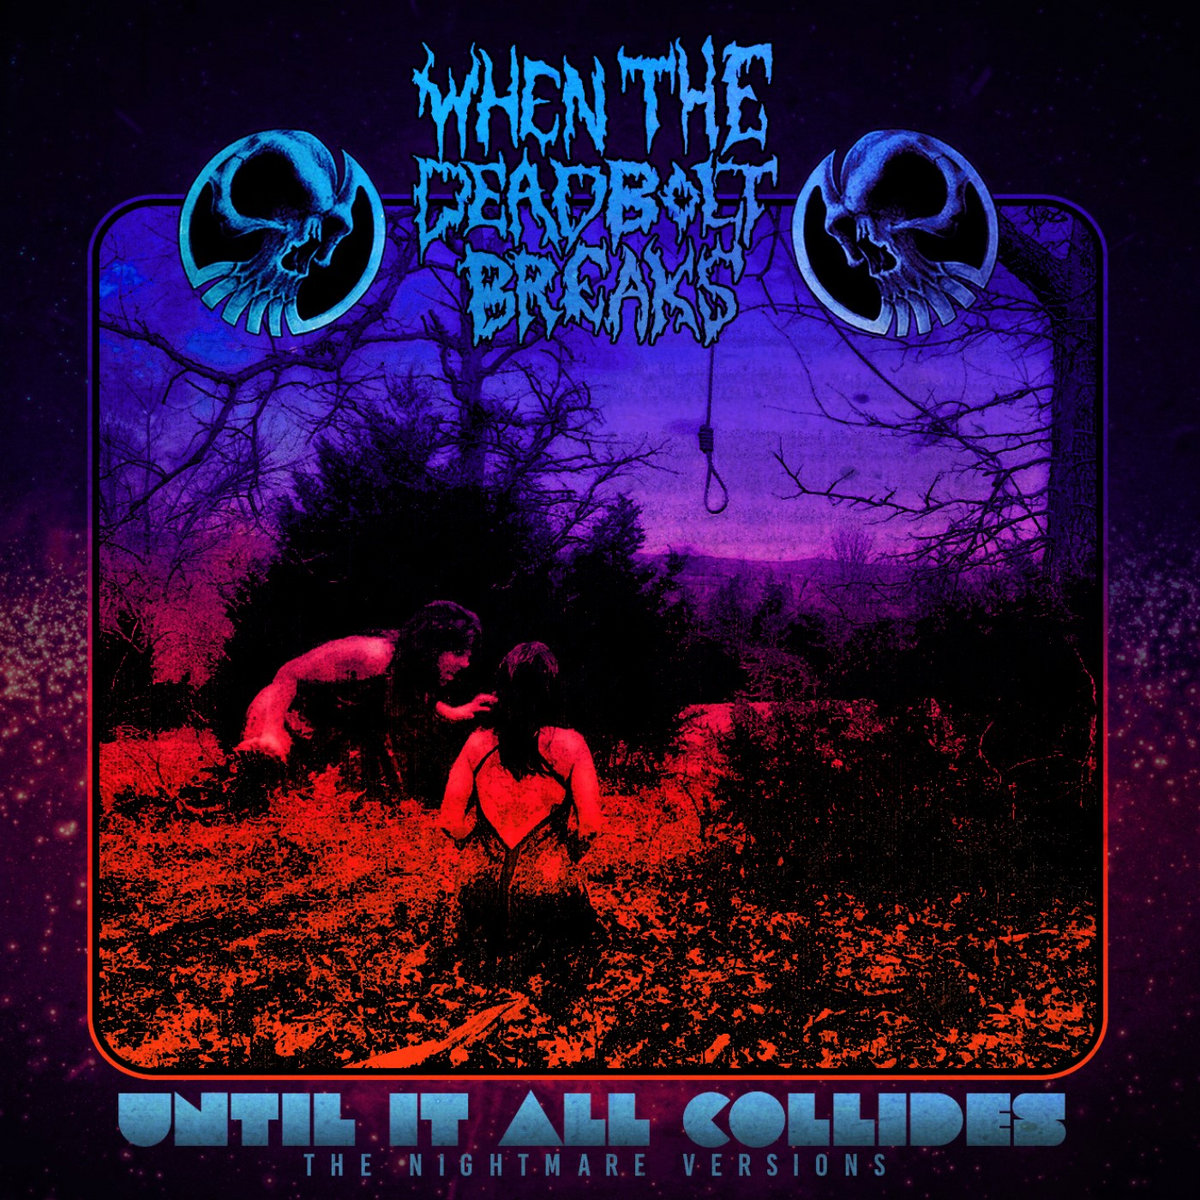 Reseña: WHEN THE DEADBOLT BREAKS.- 'Until it all collides: The nightmare versions'